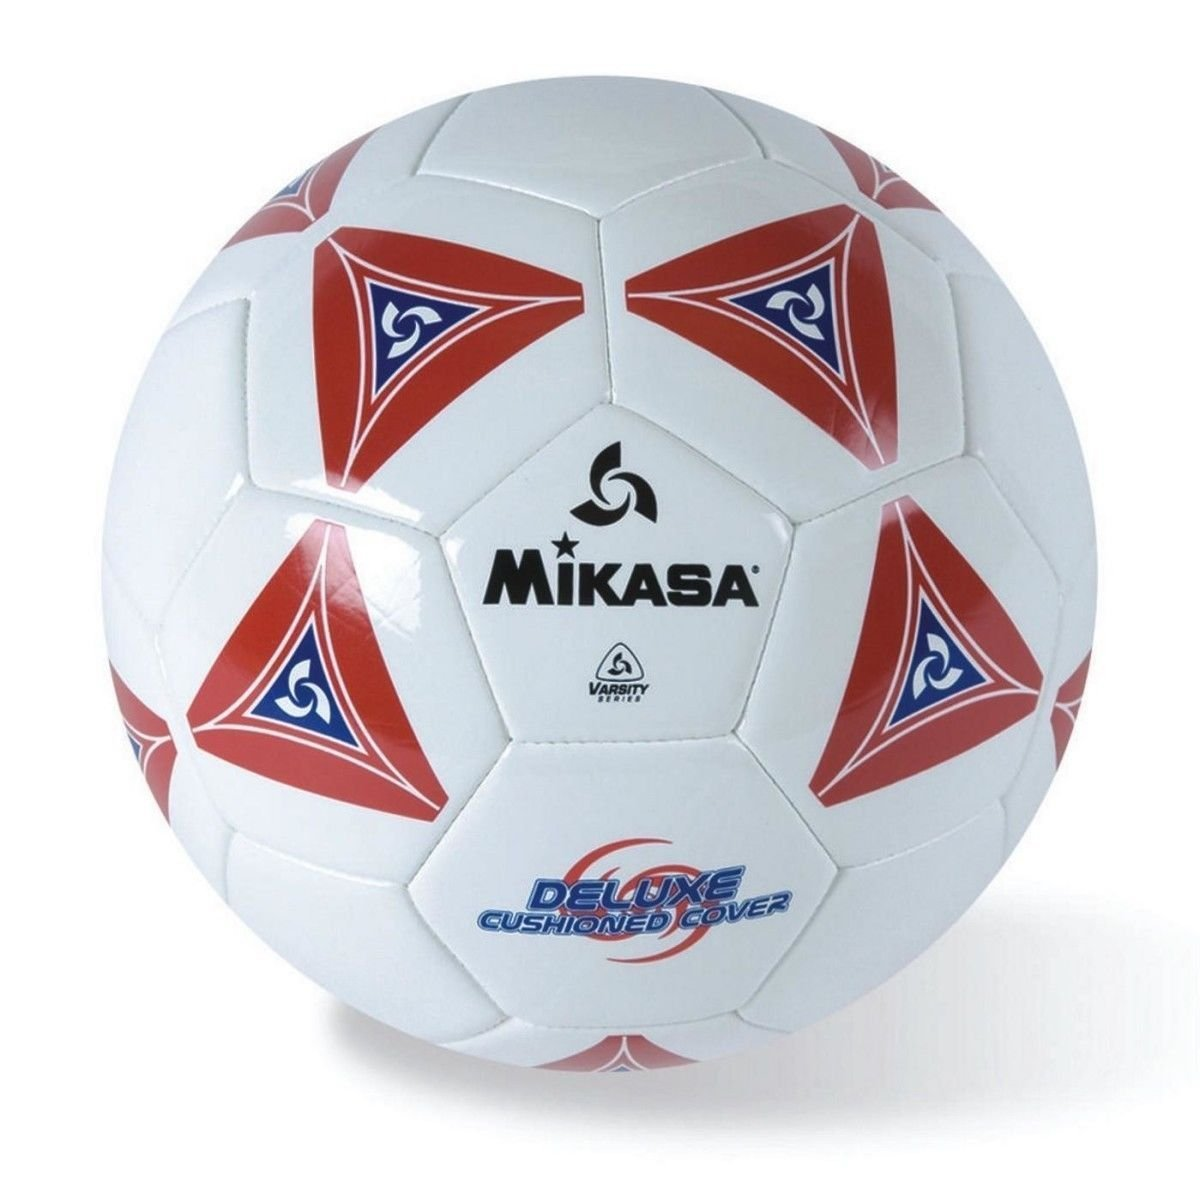 Mikasa Serious Soccer Ball (Green/White, Size 5), 1 Year warranty By Mikasa Sports